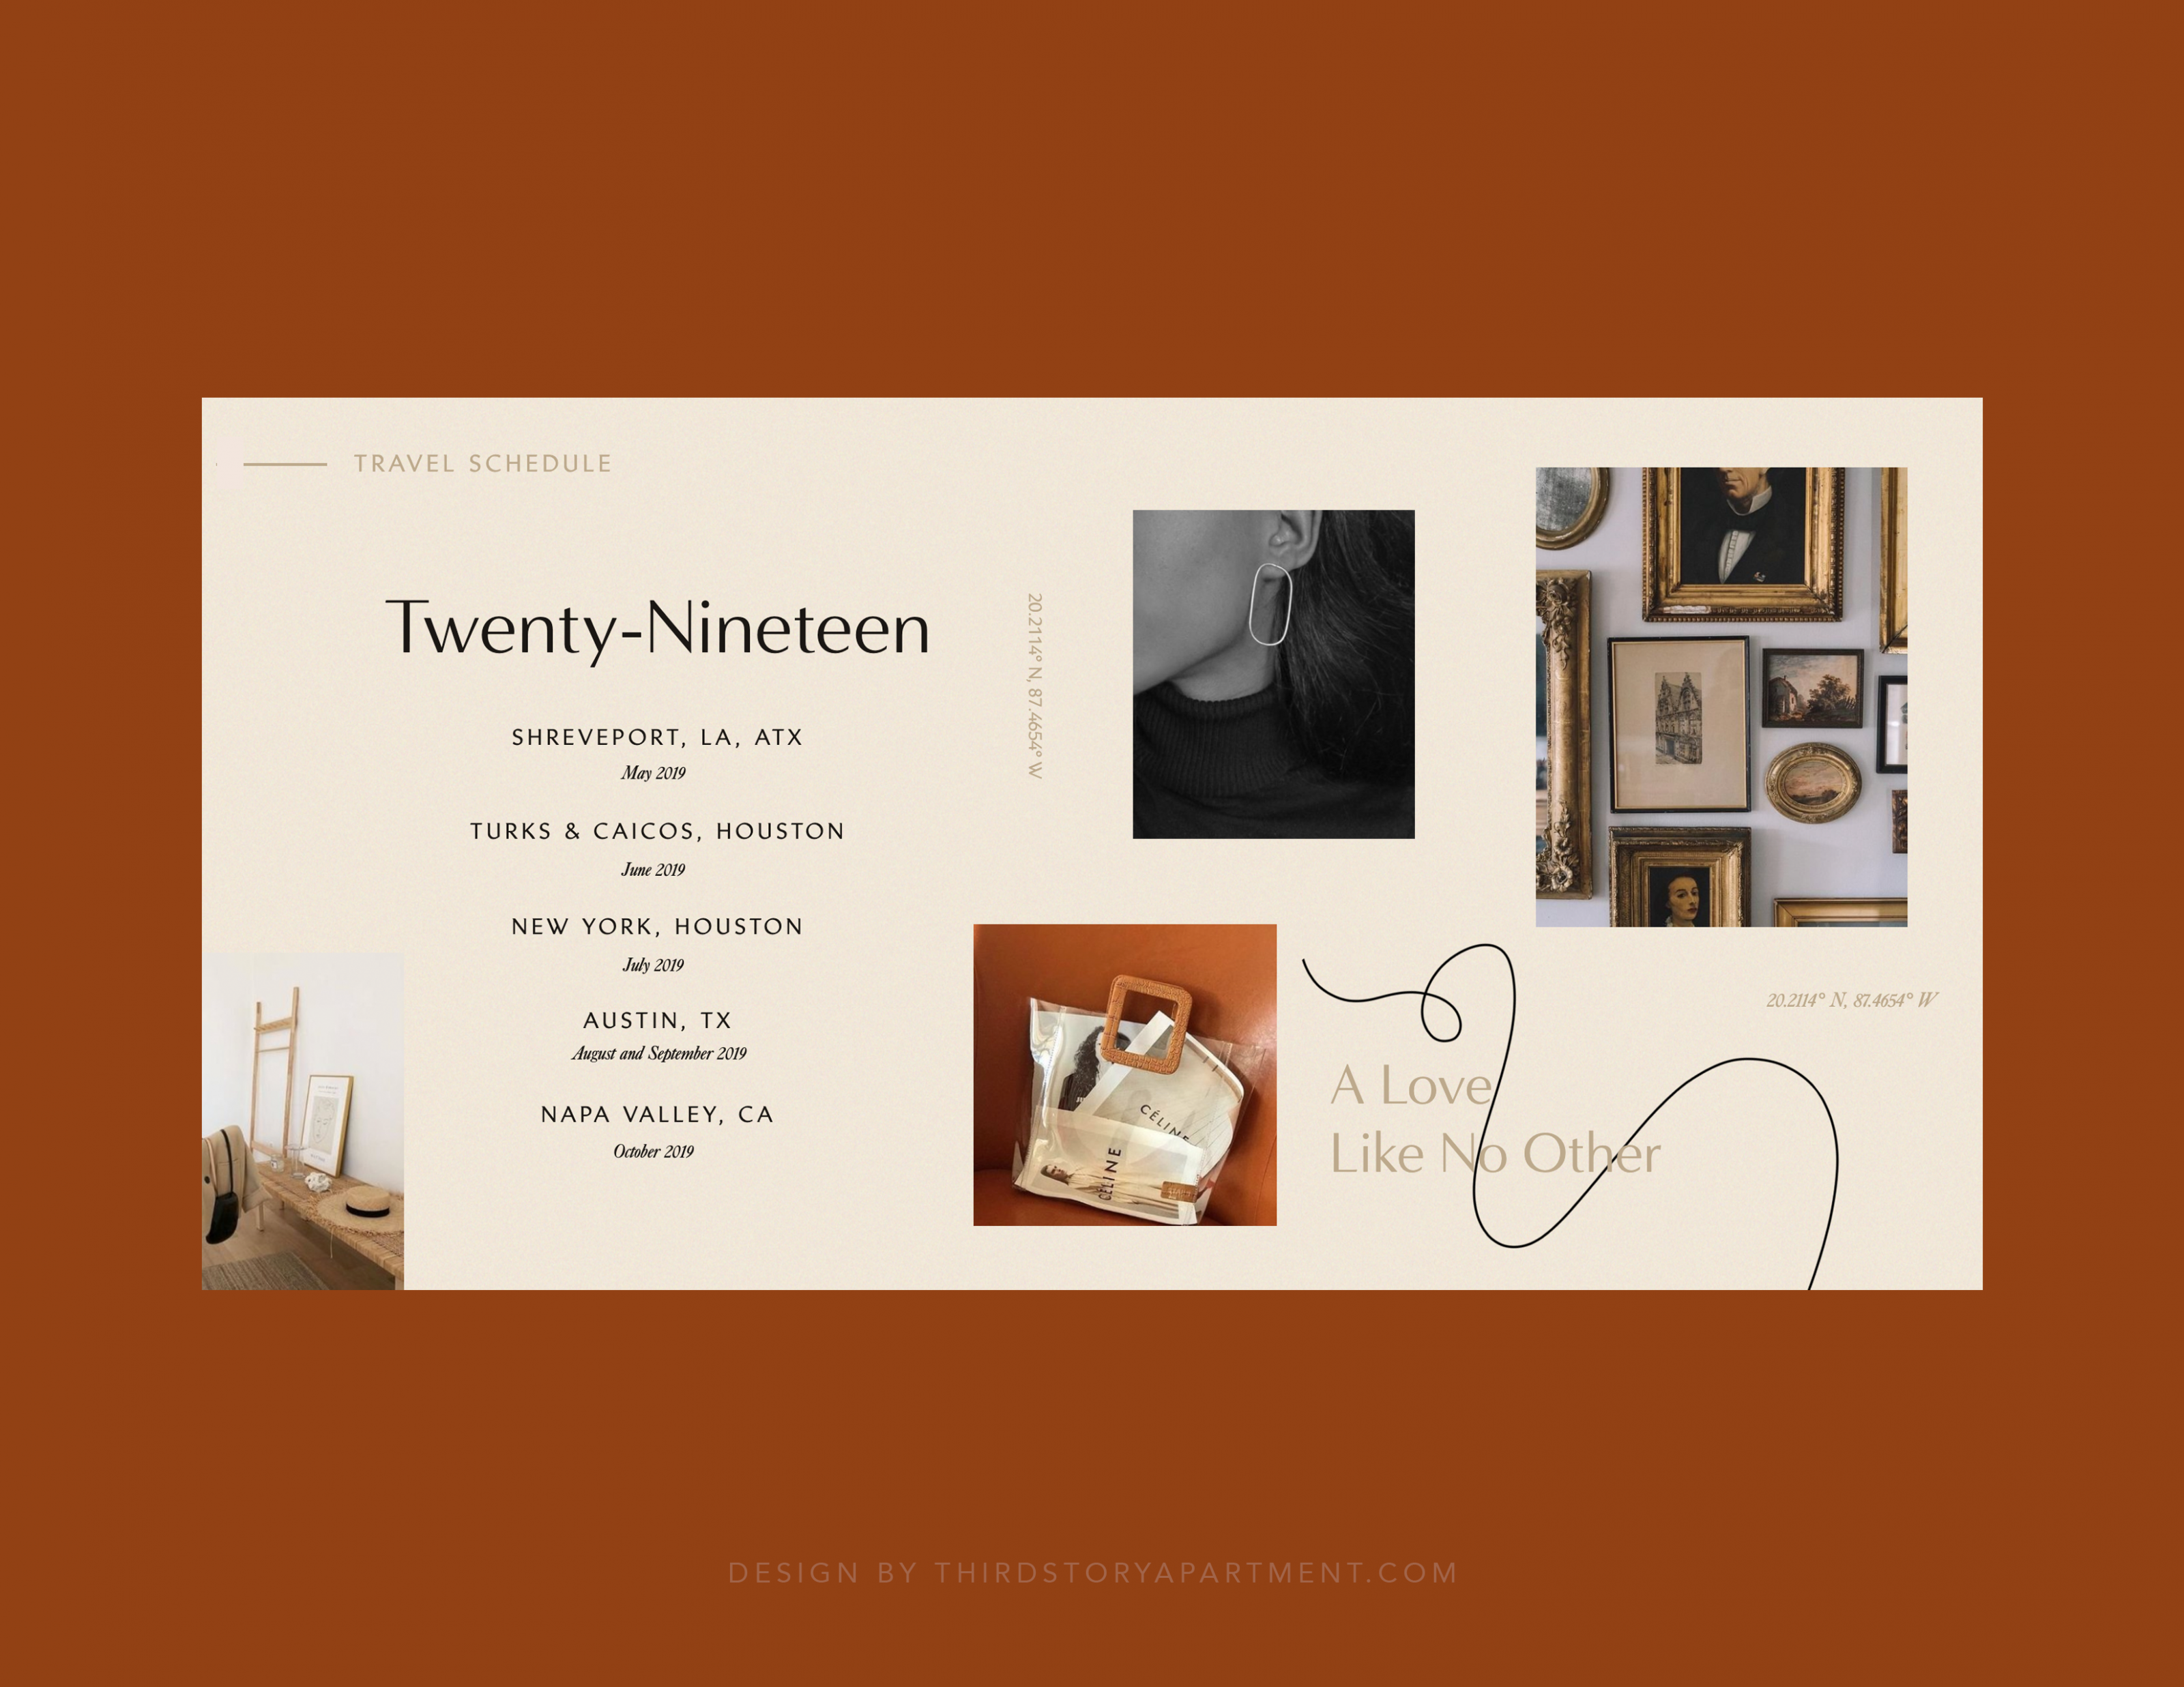 WEBSITE DESIGN— by Lindsey Eryn of Third Story Apartment in 8  - Apartment Website Design Inspiration